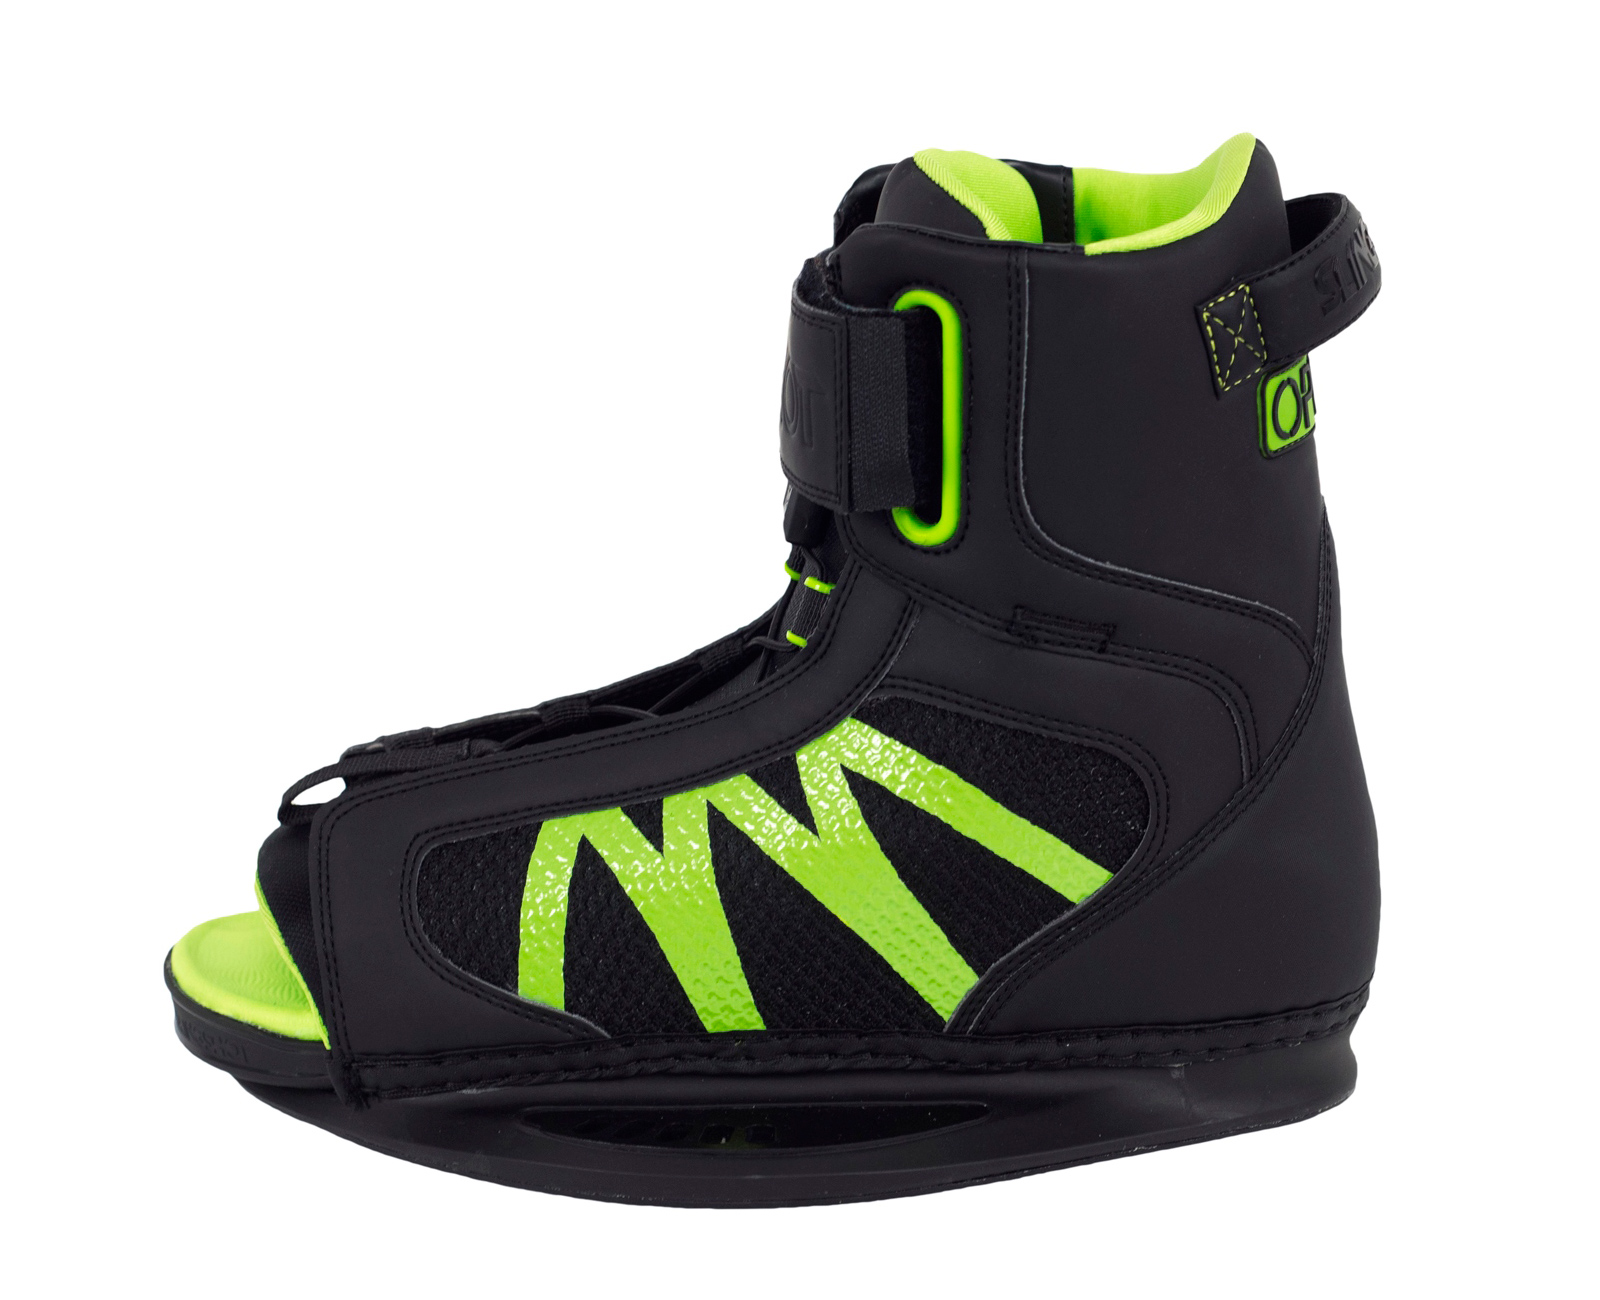 Details about Slingshot Wakeboarding Boots - Option 2017 - Wake Bindings,  Open Toe, Beginner